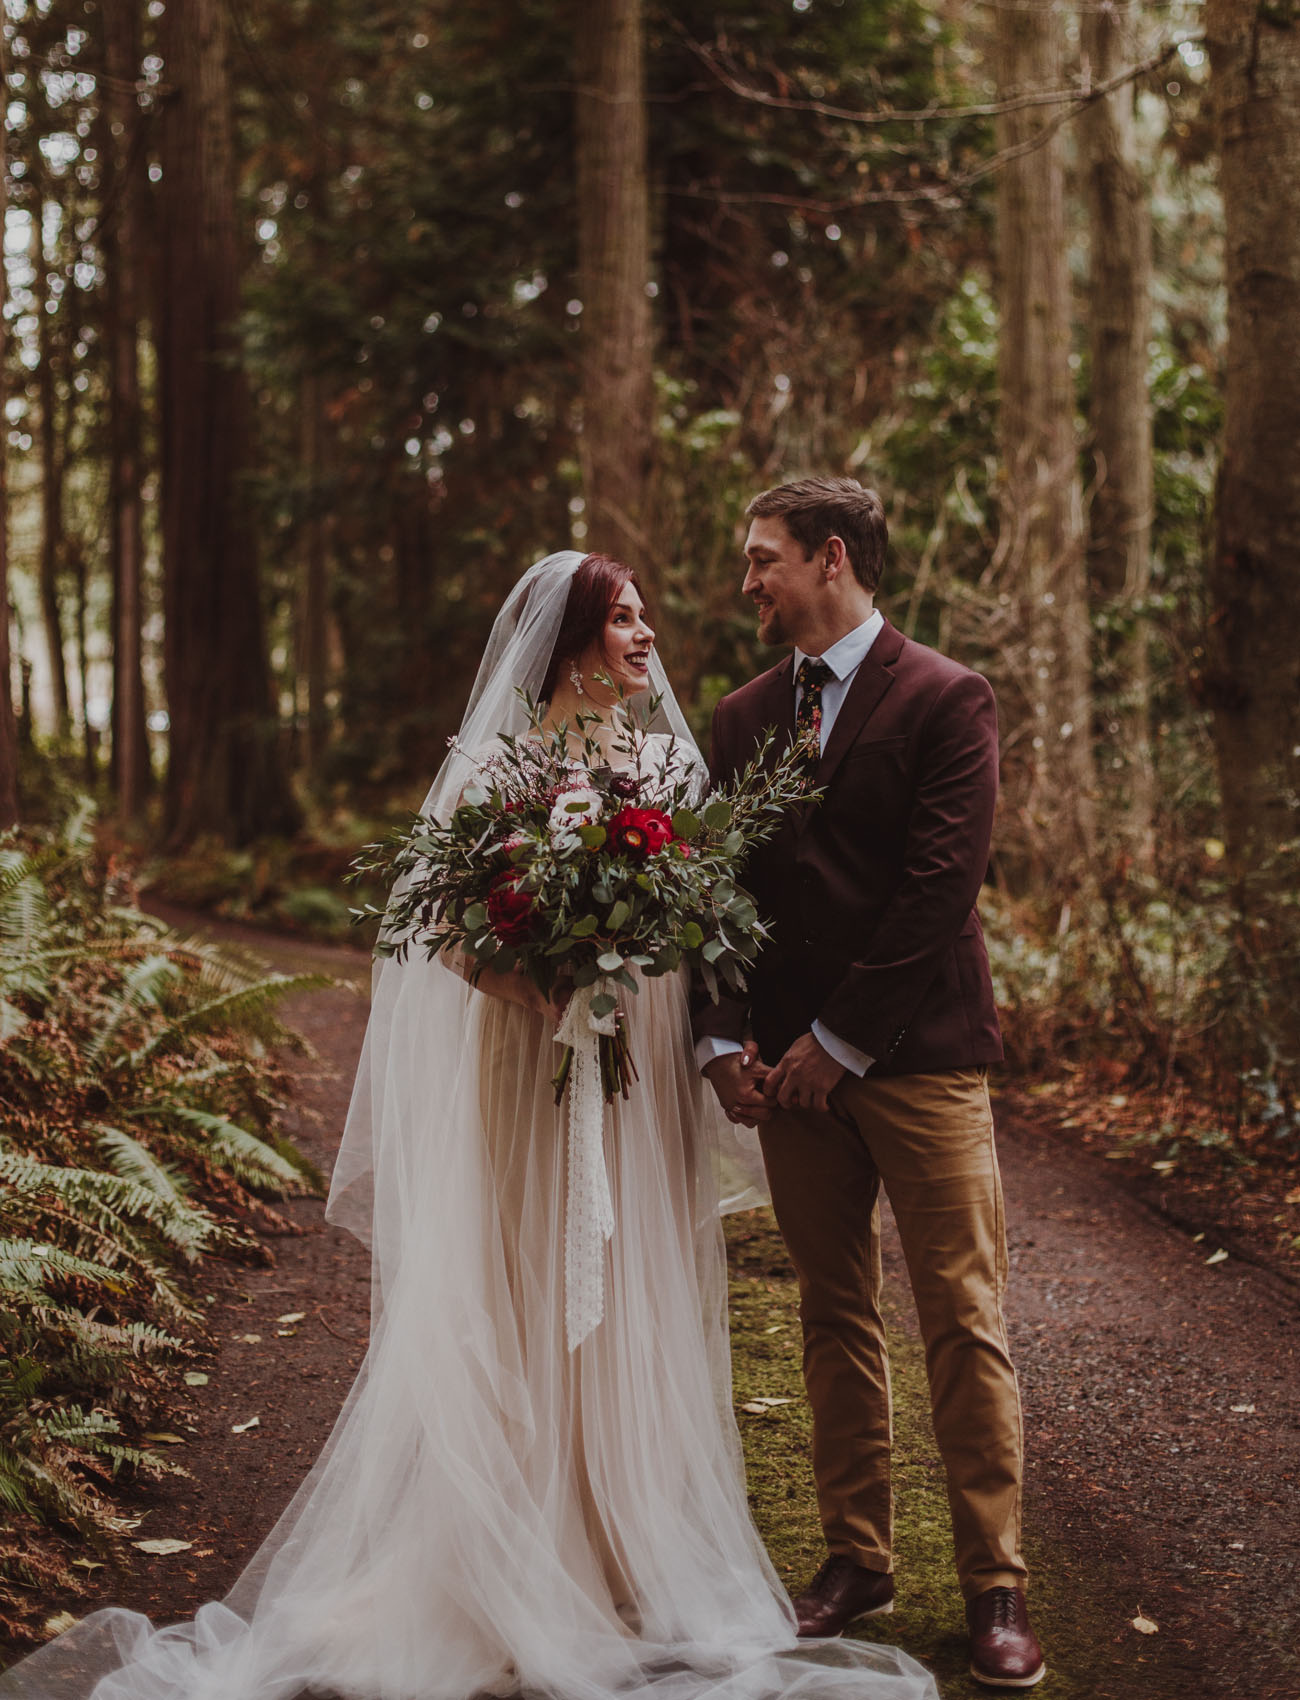 Olympic Peninsula Forest Elopement